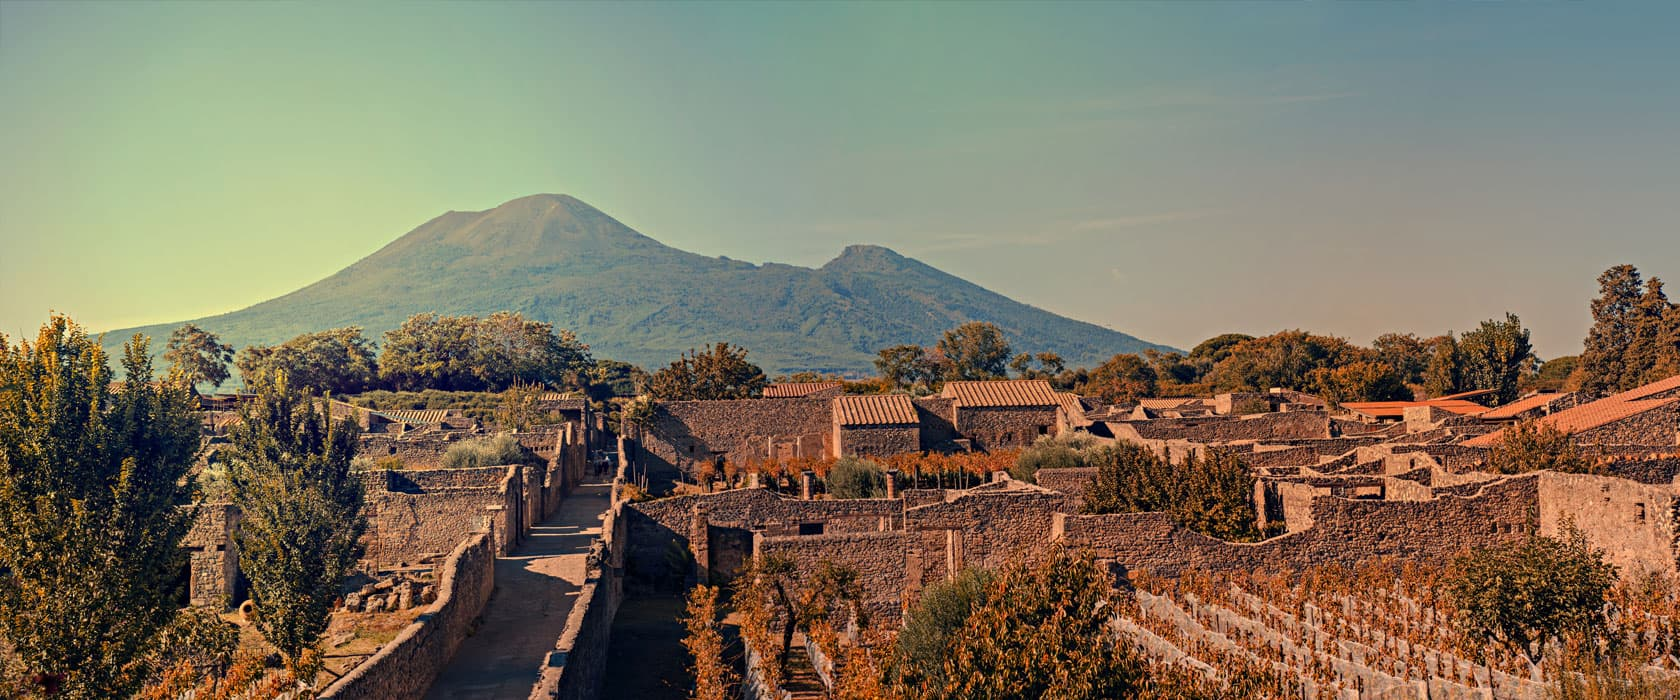 View of Pompeii